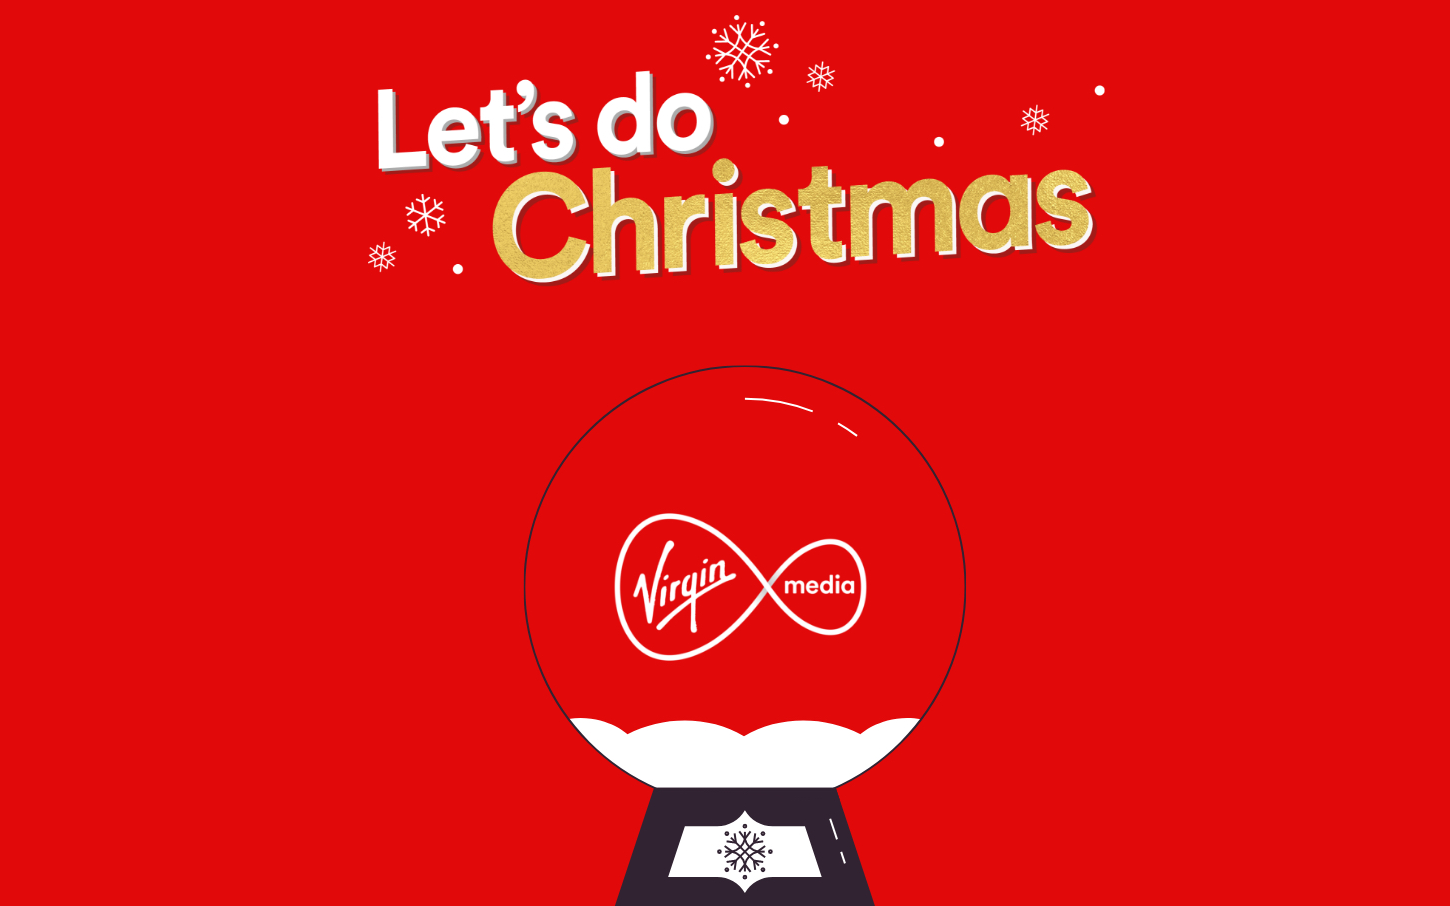 Virgin Media Let's do Christmas